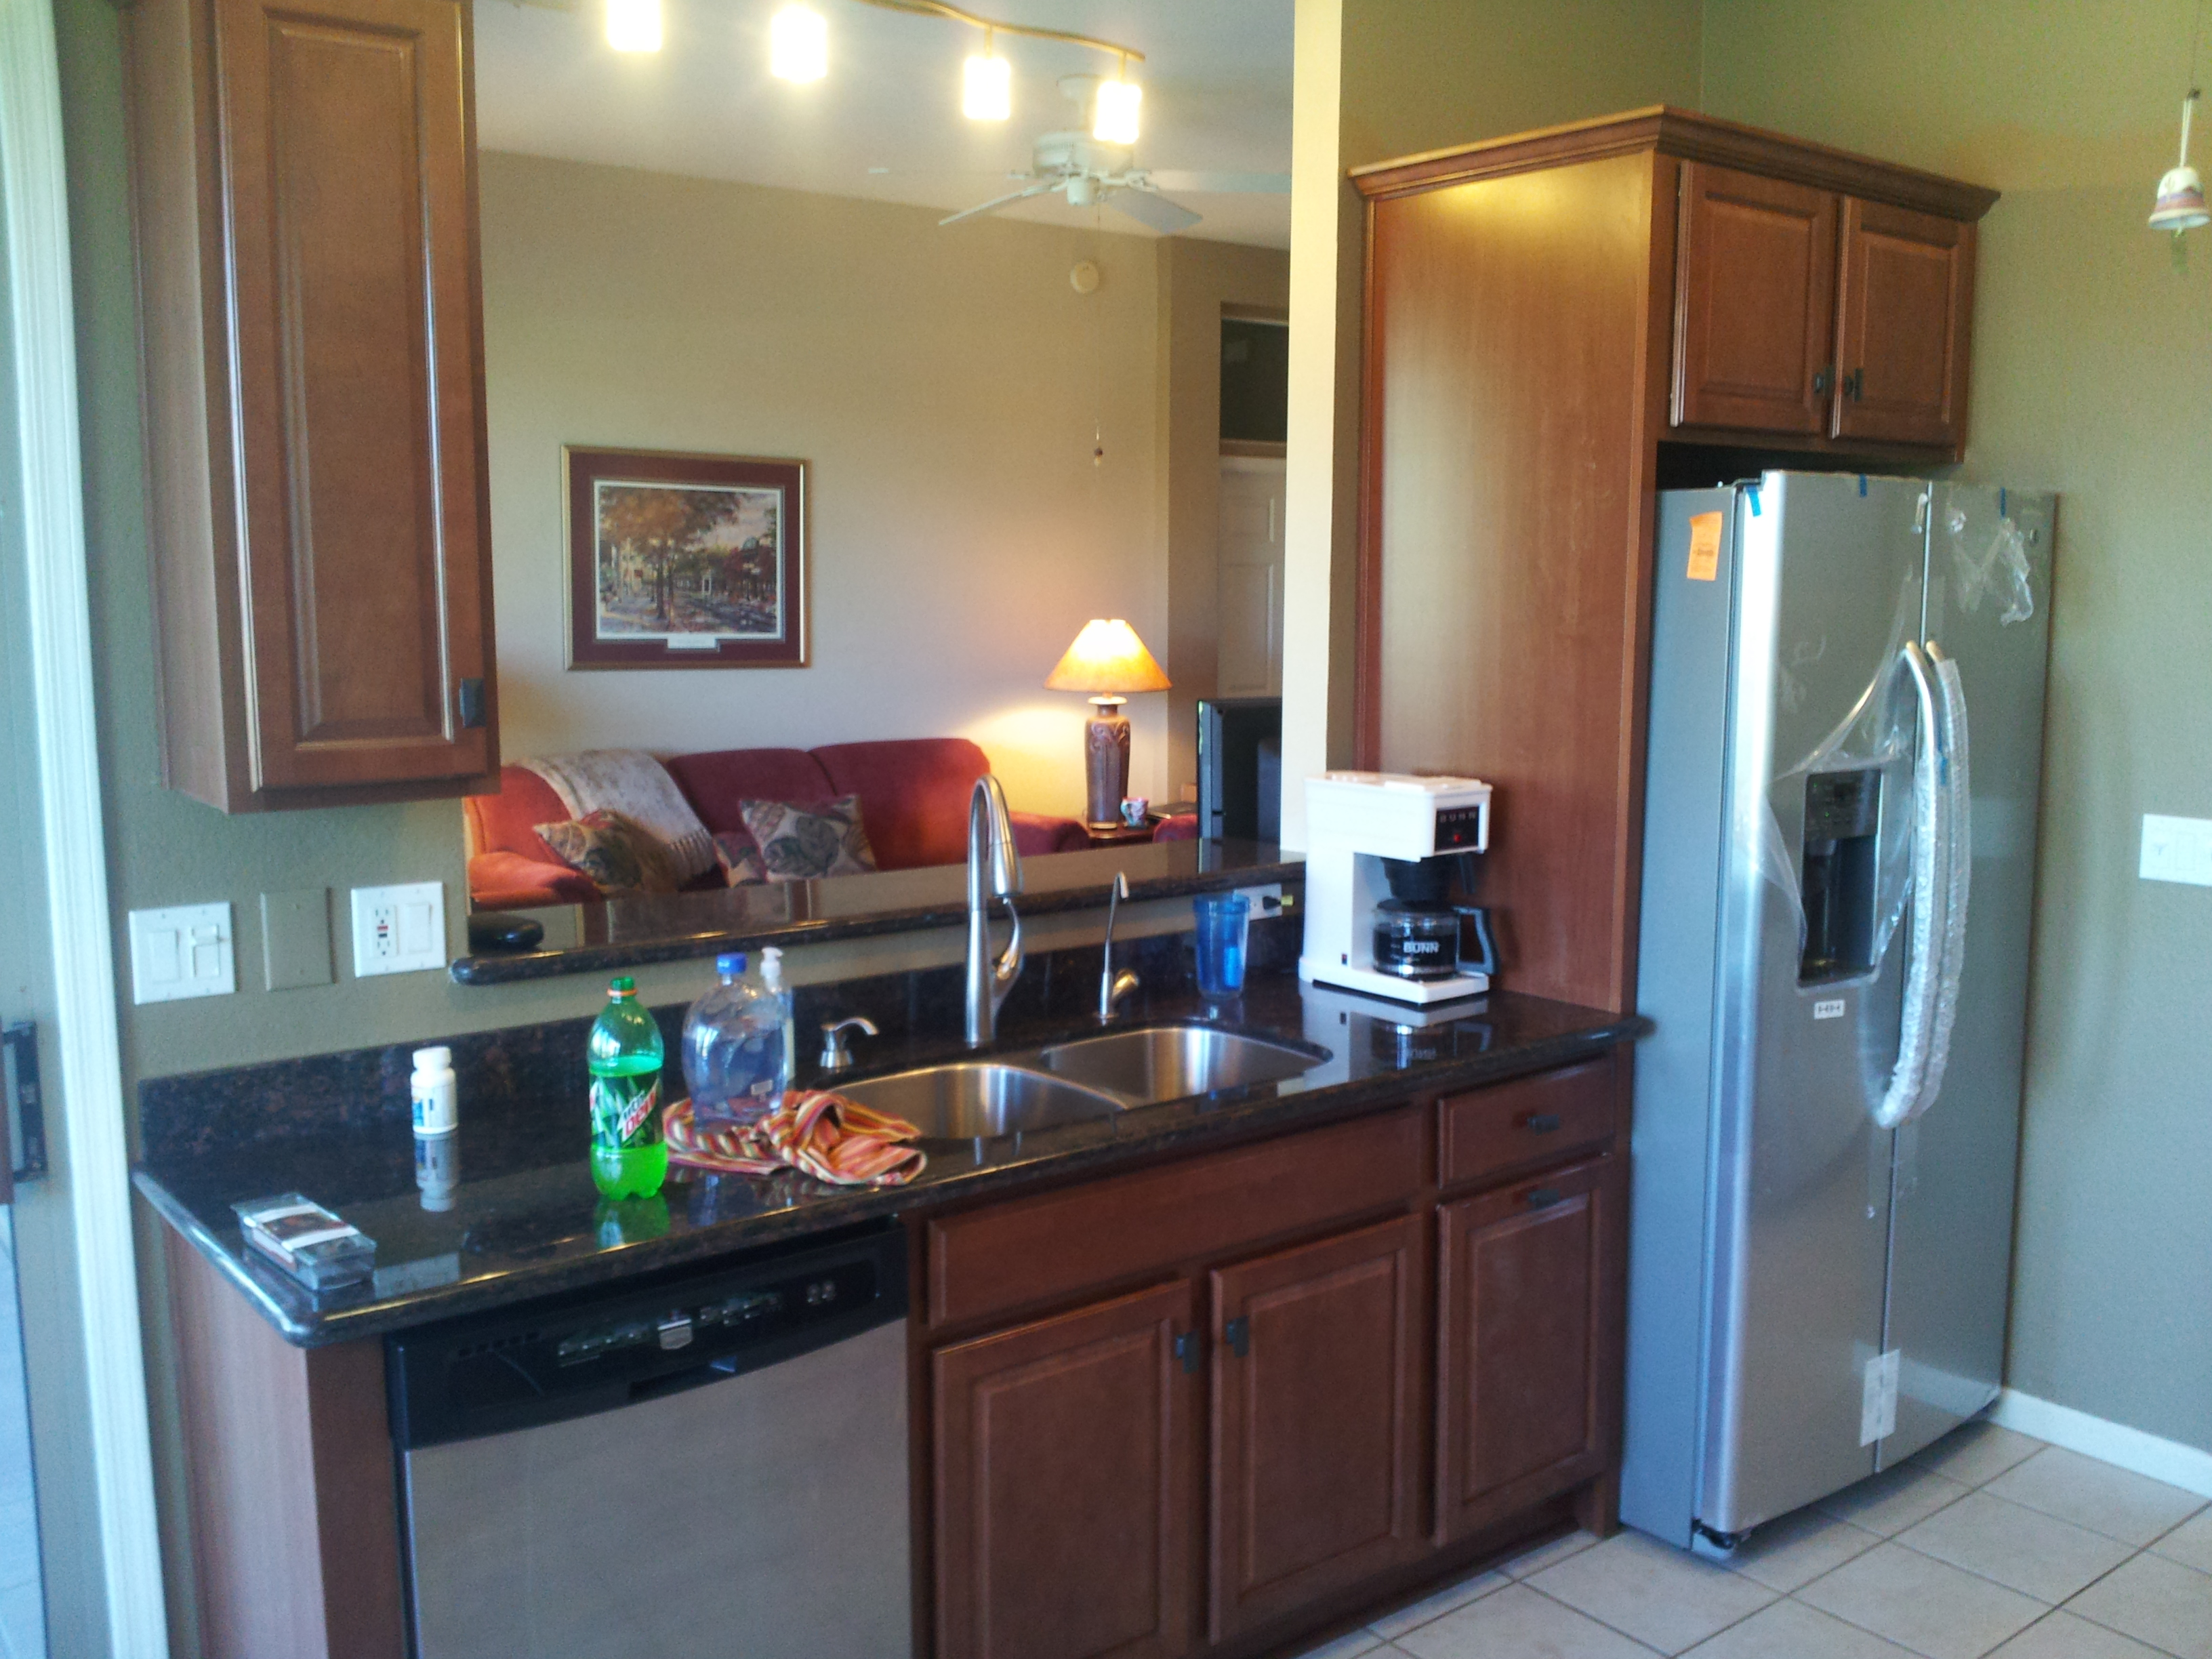 countertops | Phoenix AZ Kitchen Cabinet Home Remodeling Contractor